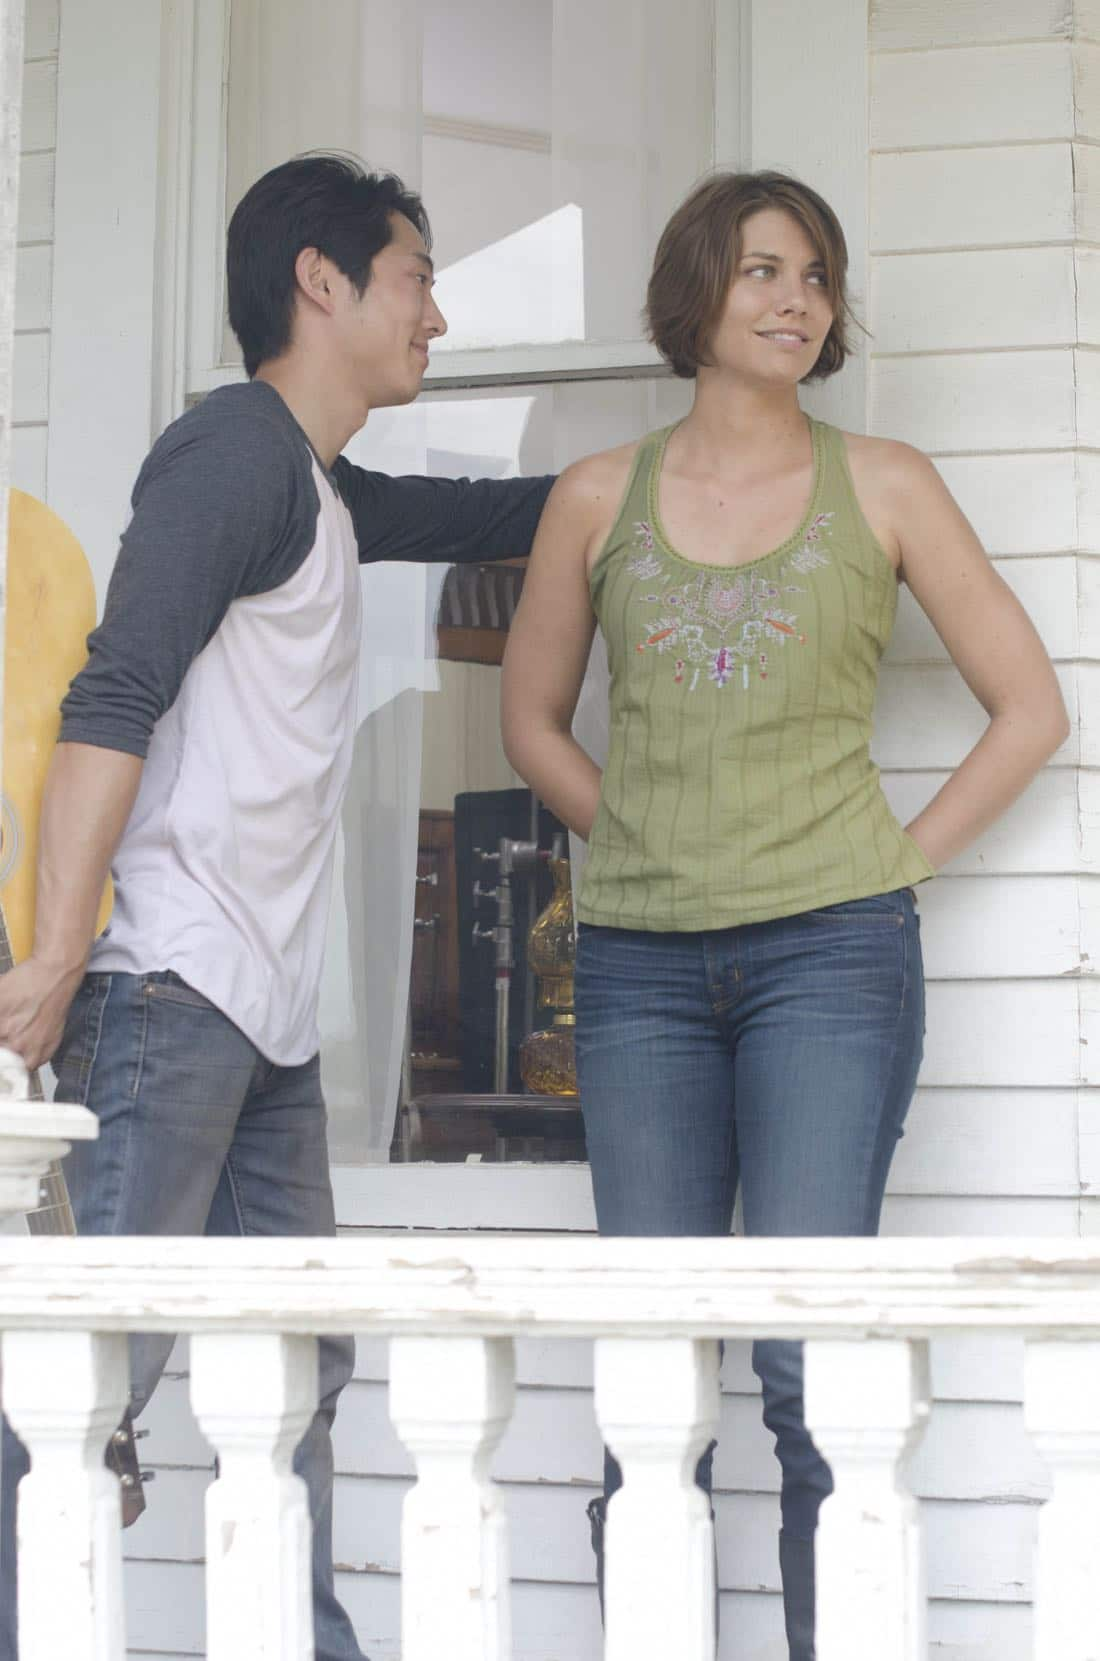 Glenn (Steven Yeun) and Maggie Greene (Lauren Cohan) - The Walking Dead - Season 2, Episode 5